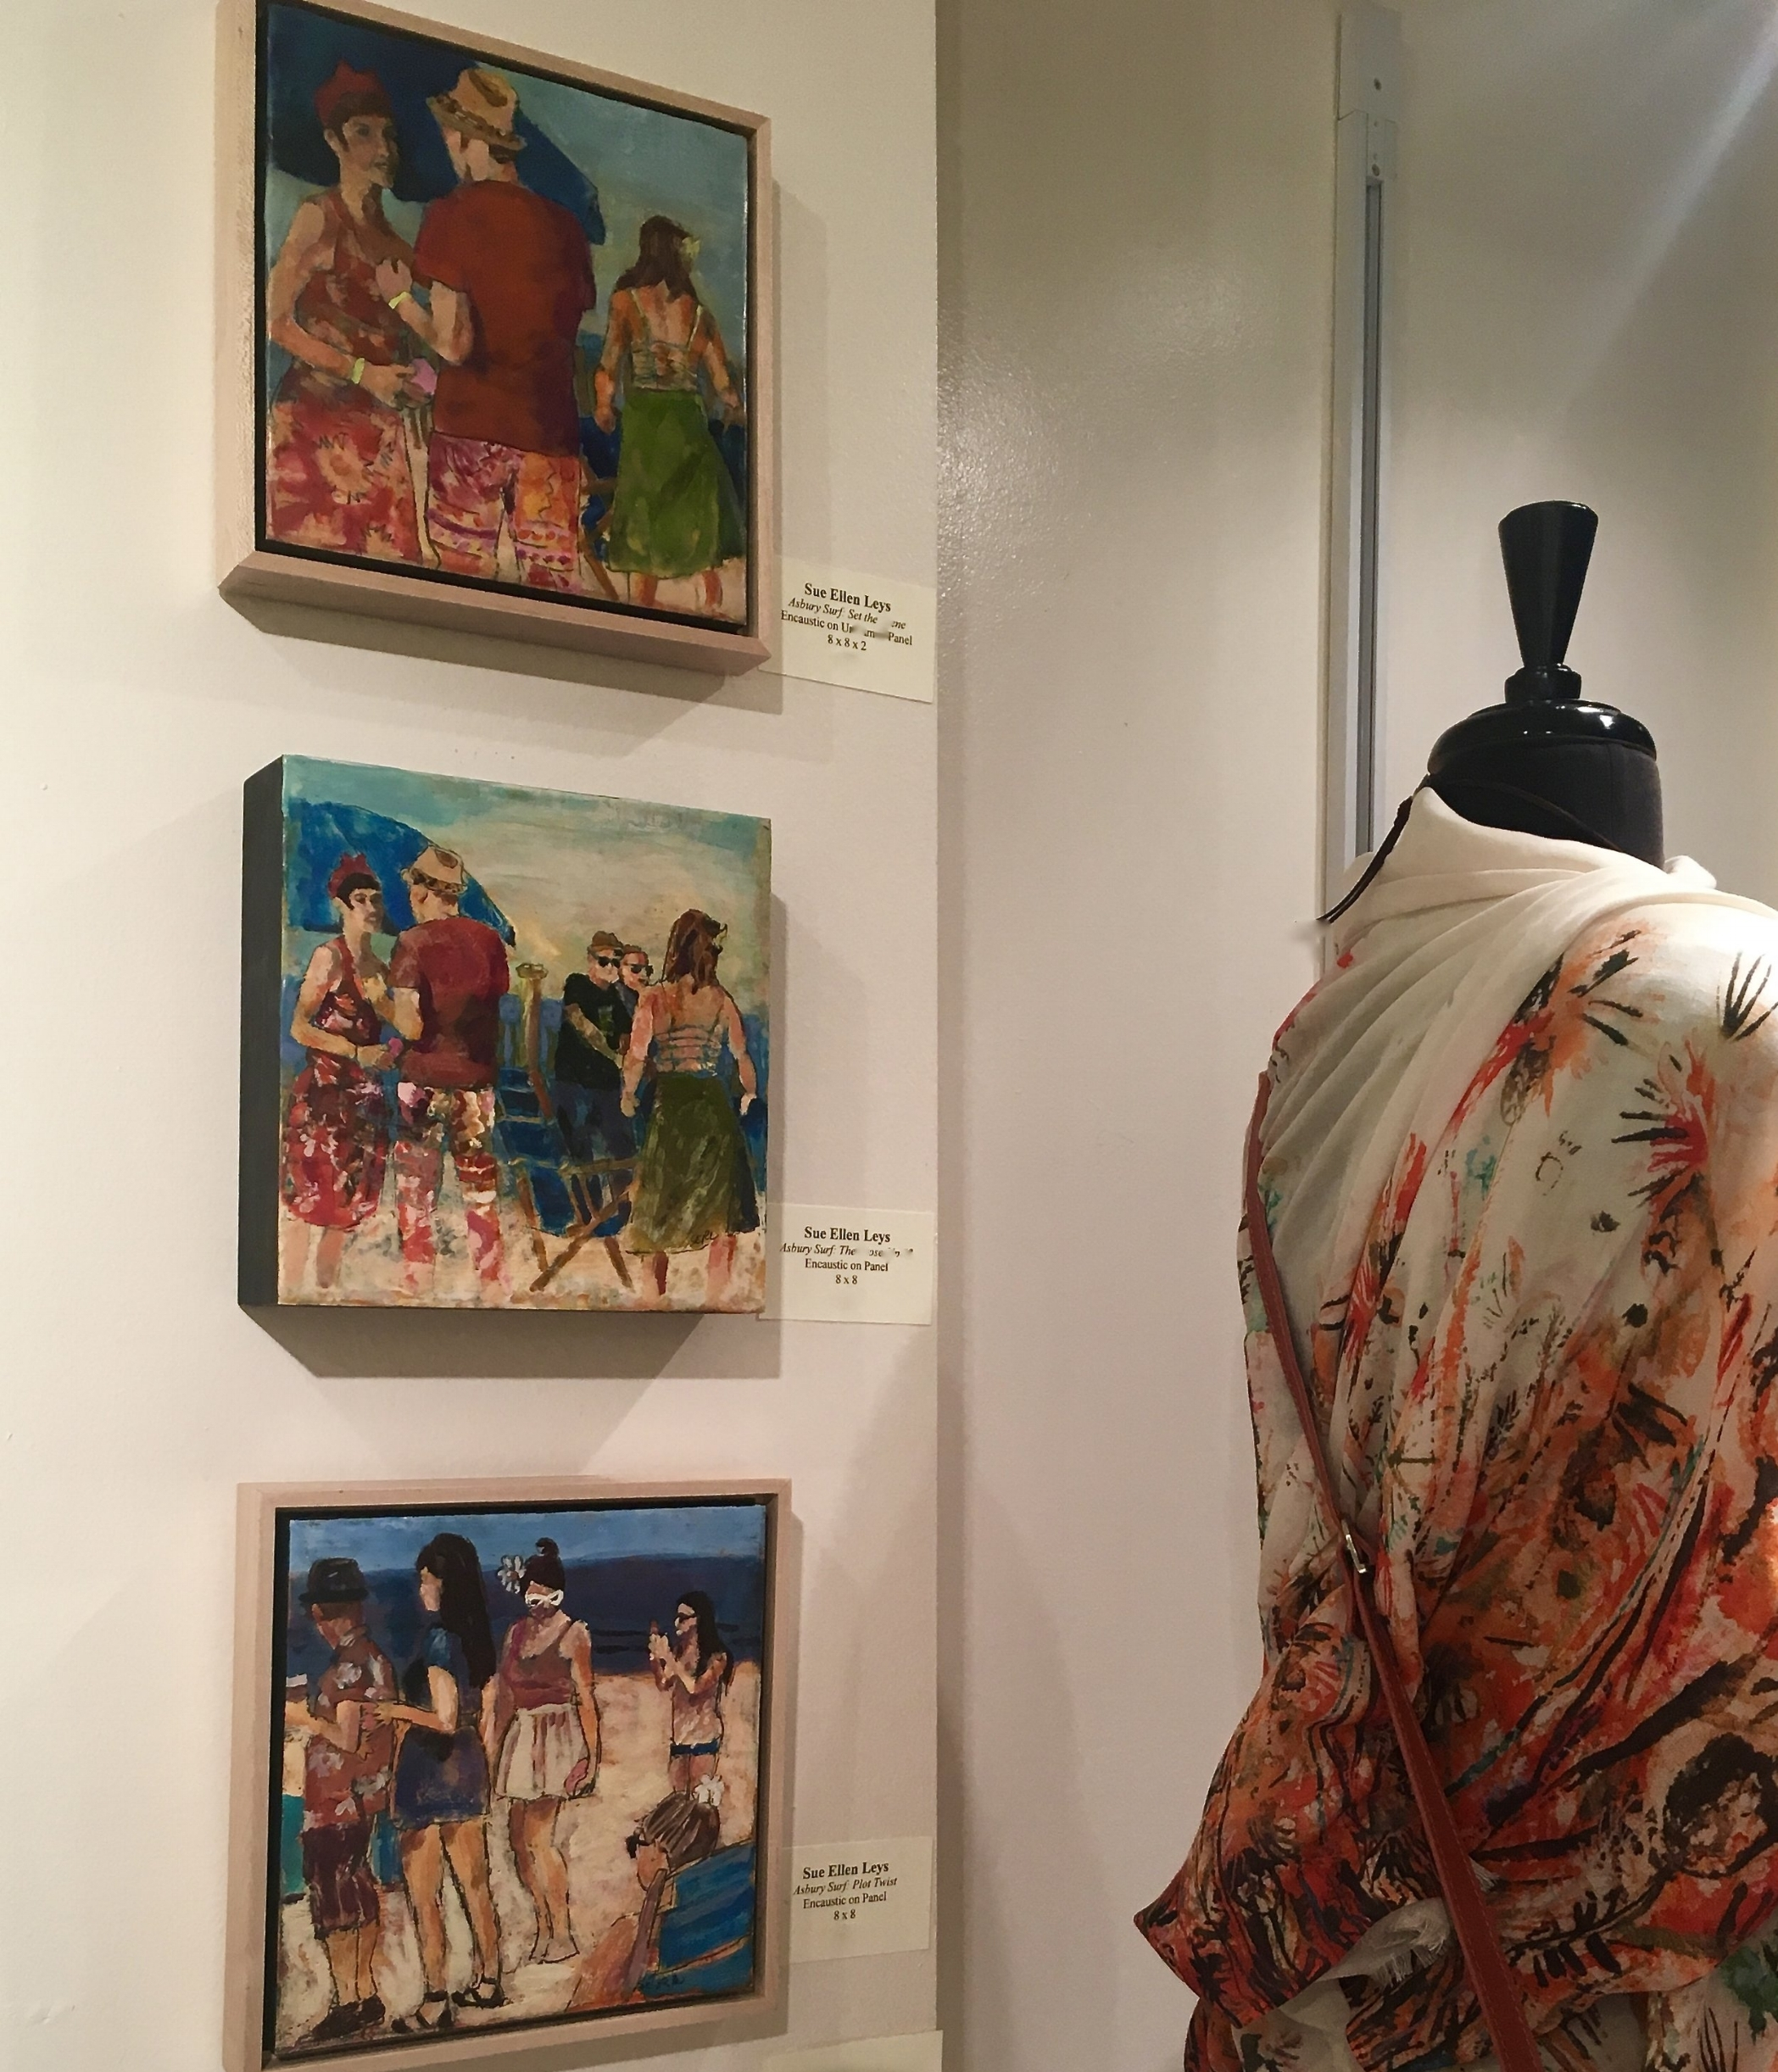 2018 Exhibition continuing atthe Tenth muse: - For the SOUTH ORANGE/ MAPLEWOOD ARTISTS STUDIO TOUR June 2 & June 3:Showing at The Tenth Muse Gallery170 Maplewood Ave., MaplewoodHours: M-W 10-6, Th-Sat 10-8